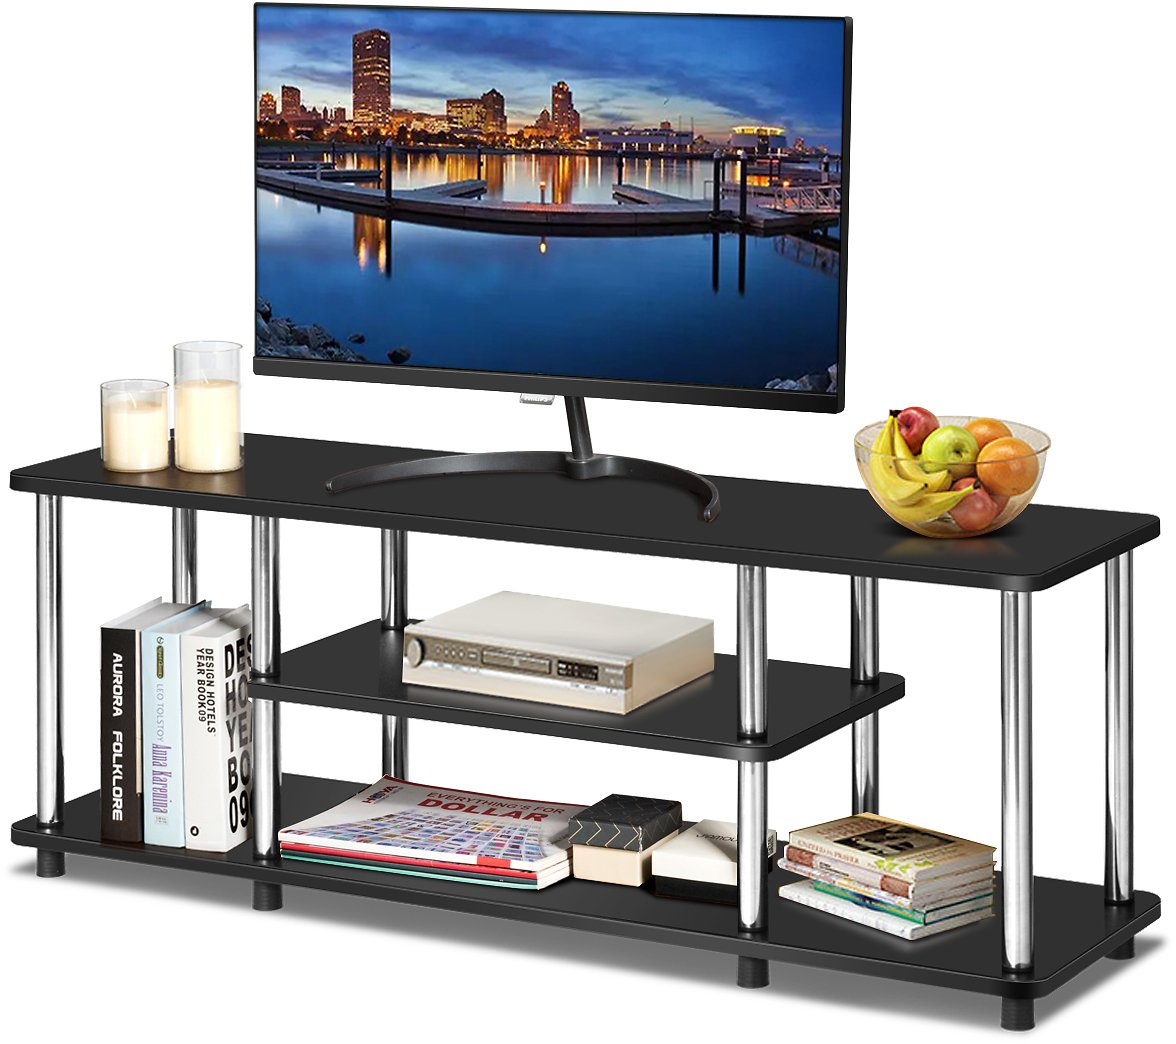 TV Stand Entertainment Center Stainless Steel Frame Black/Coffee